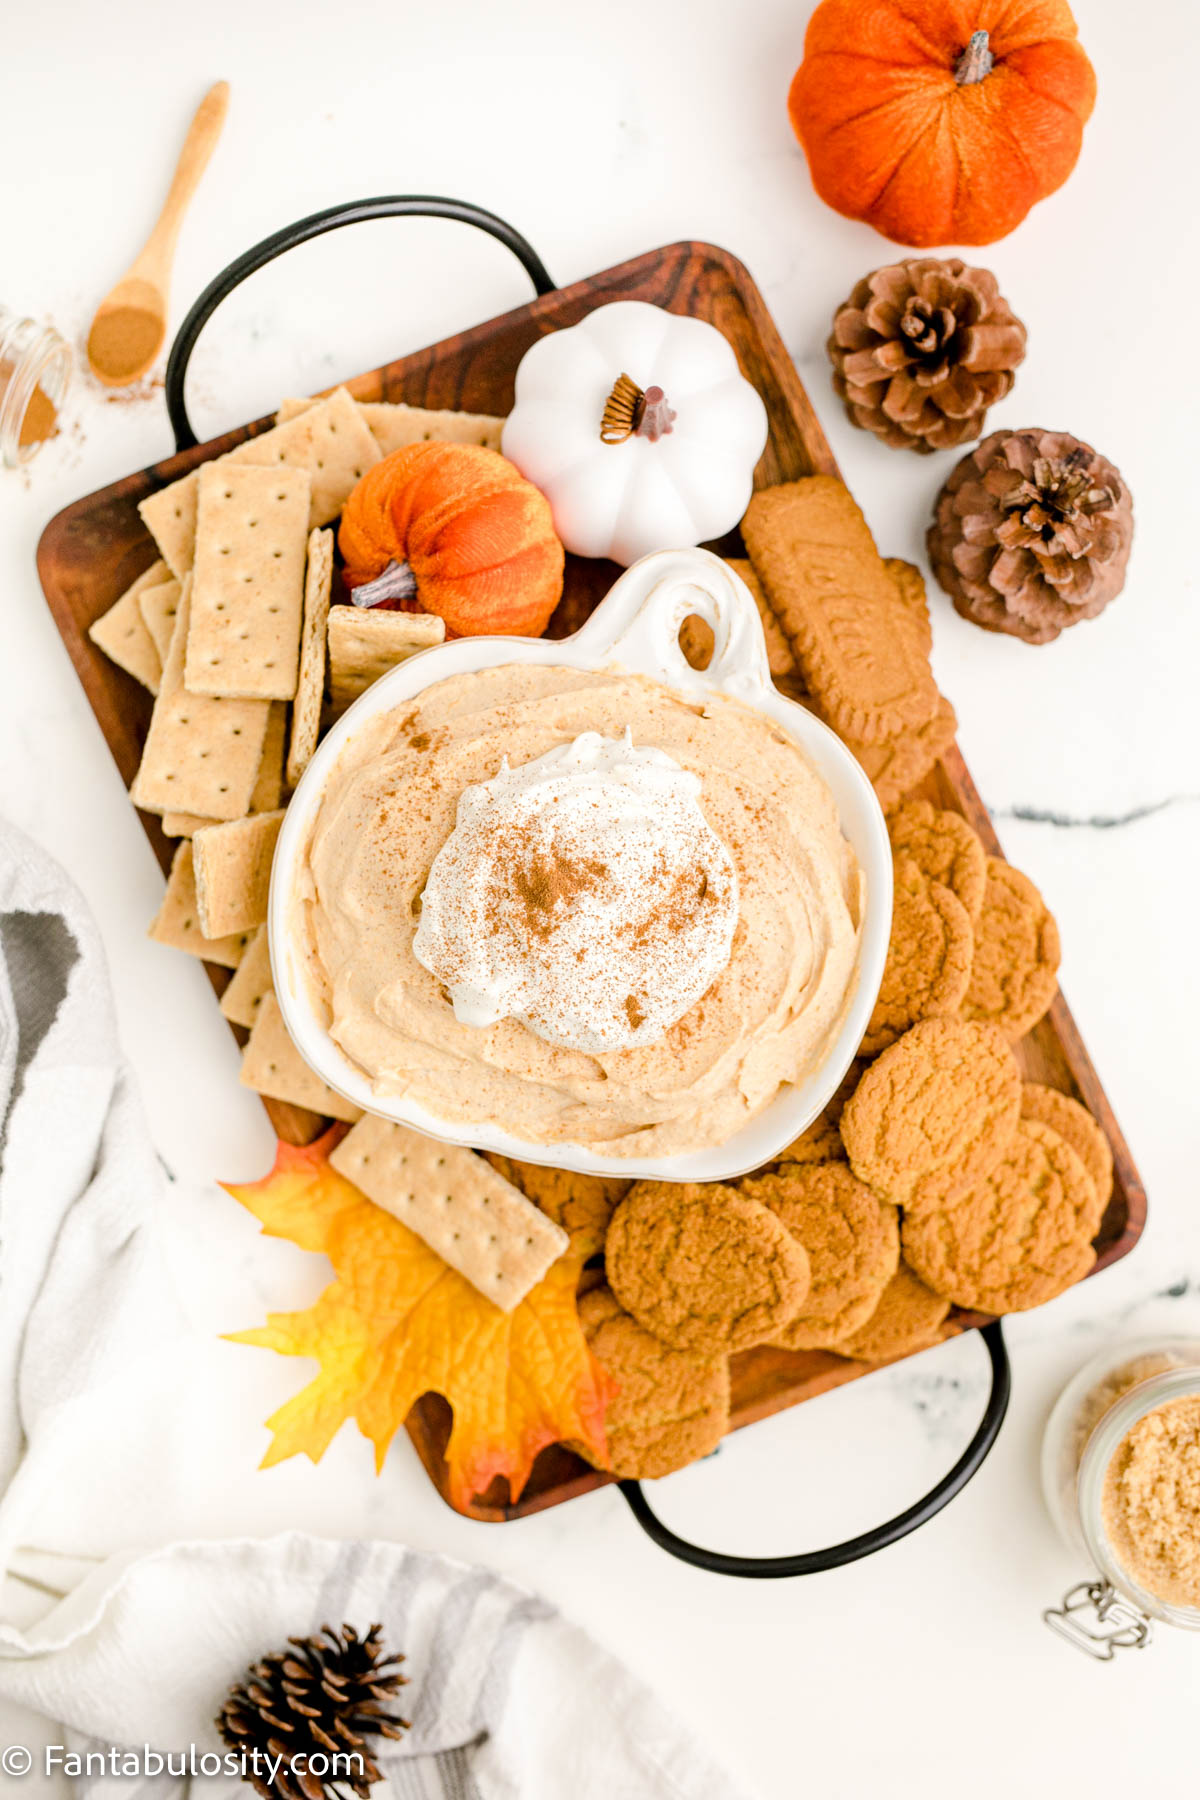 Serve on a beautiful platter with crackers and cookies